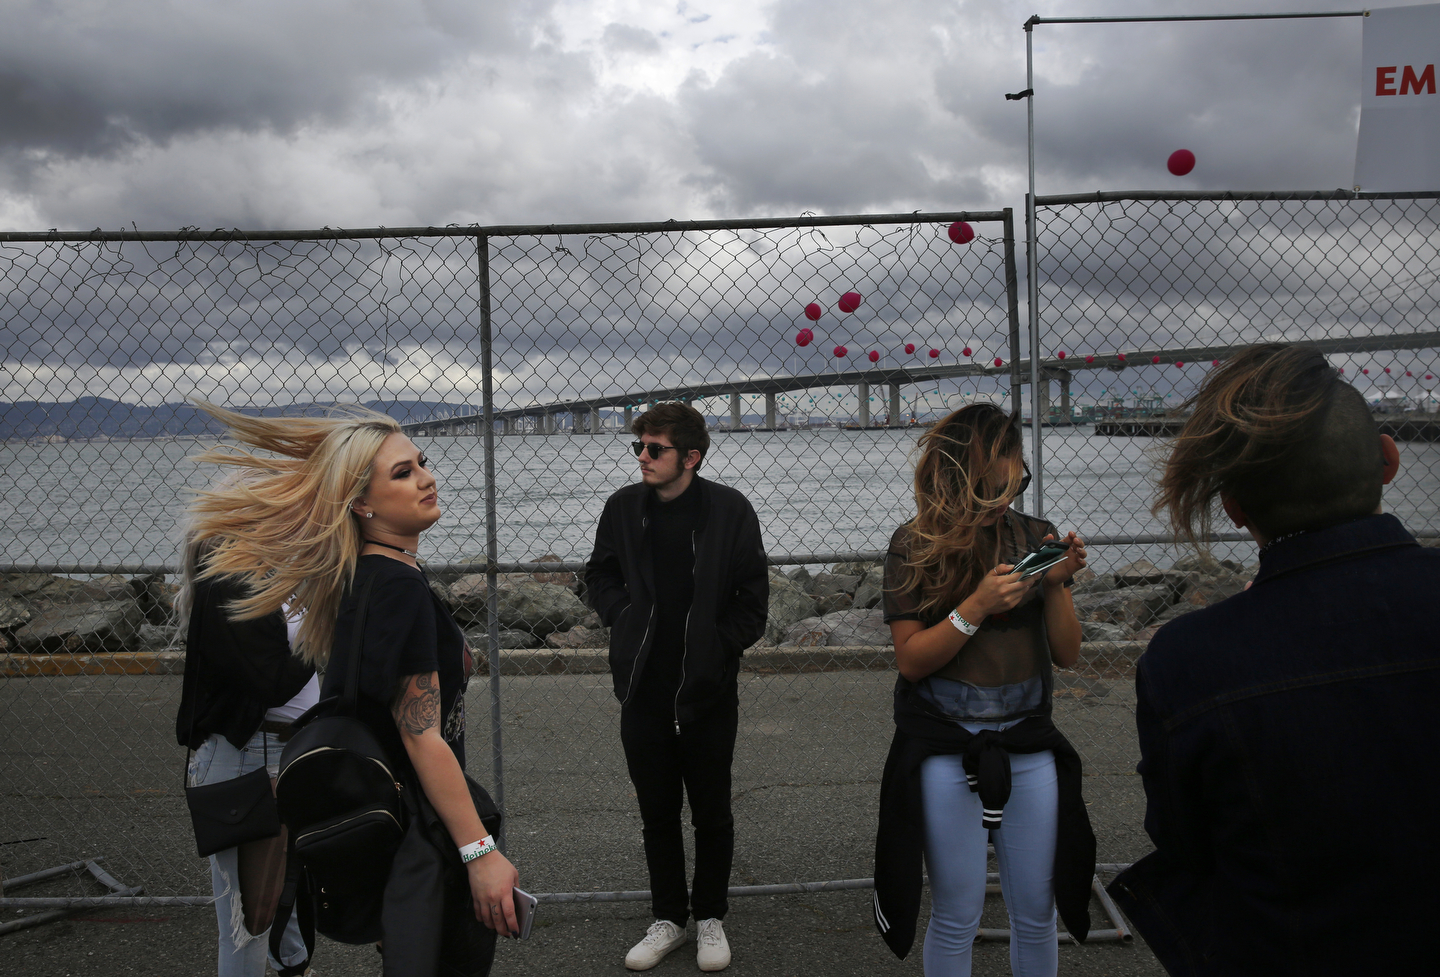 Friends, from left, Angelica Roessert, 21, (not visible) Jennifer Lee, 21, Alex Dernoncourt, 19, Jessica Hanes, 22, and Alan Martinez, 22, hang out and pose for photos with the Bay Bridge in the background as storm clouds approach during first day of the Treasure Island music festival Oct. 15, 2016 in San Francisco, Calif.